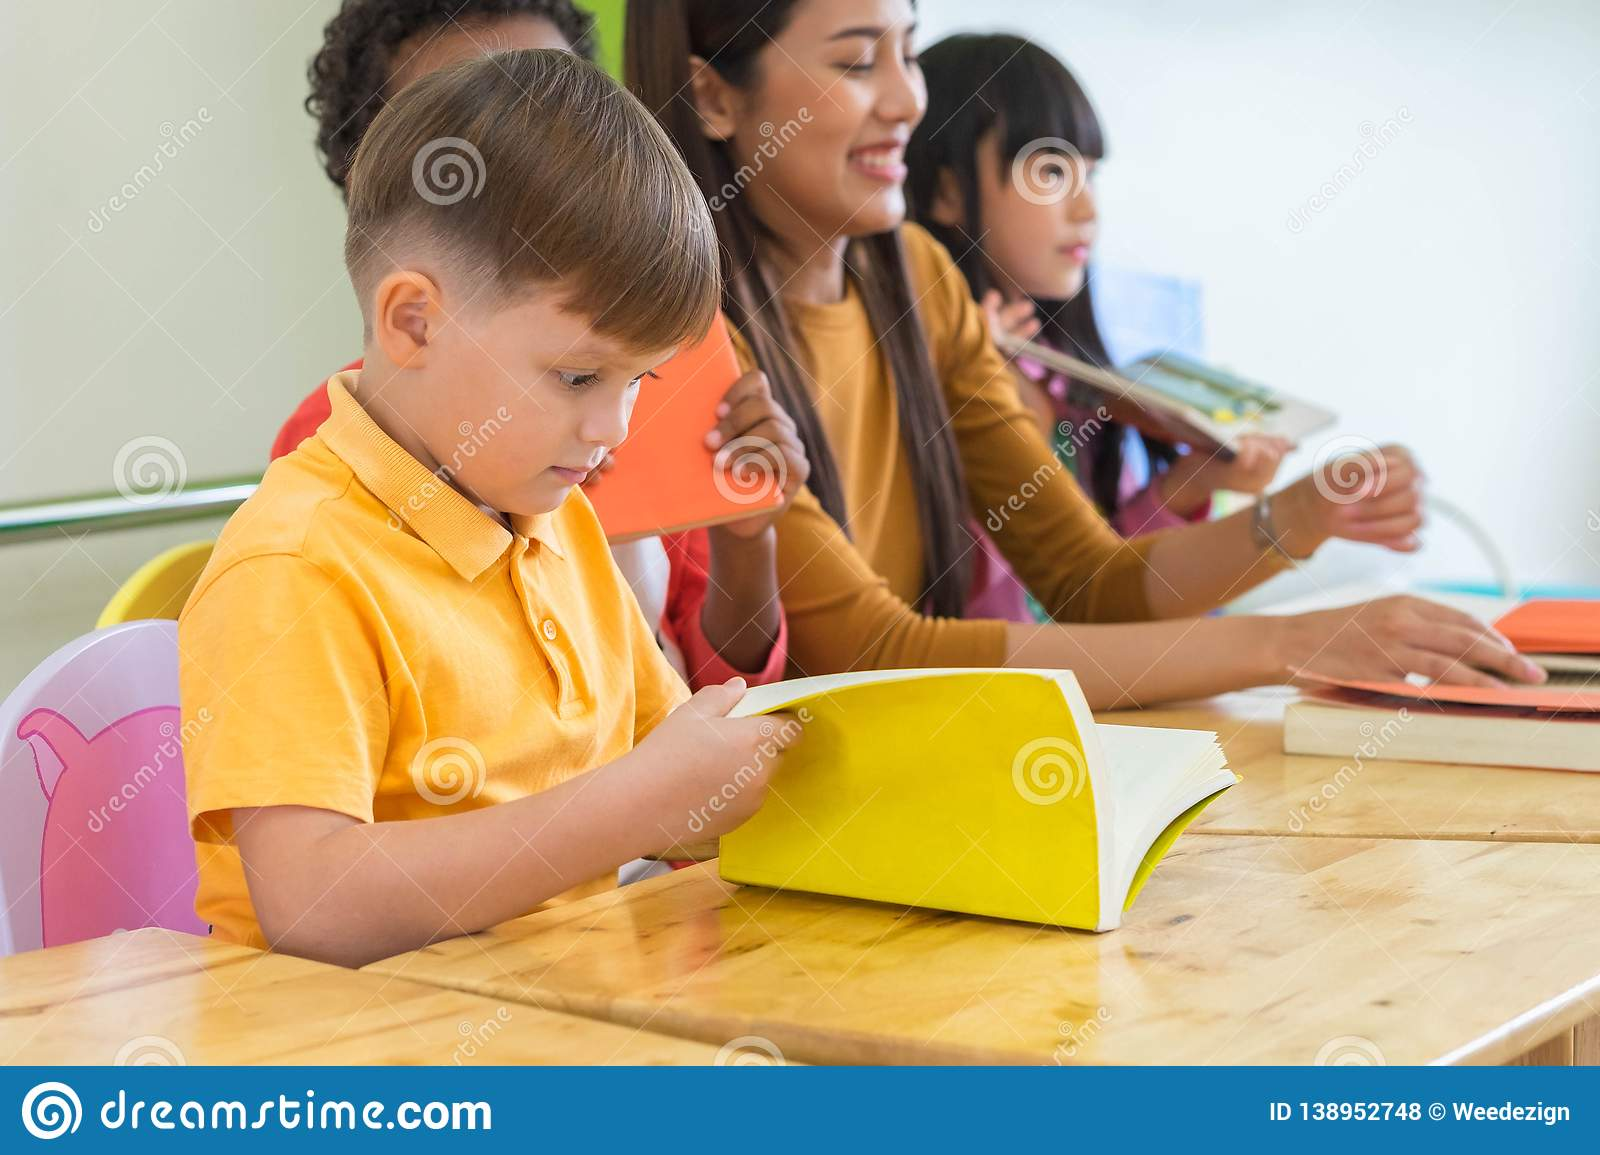 Caucasian boy ethnicity kid reading book white learning in classroom with friends and teacher in kindergarten school, education